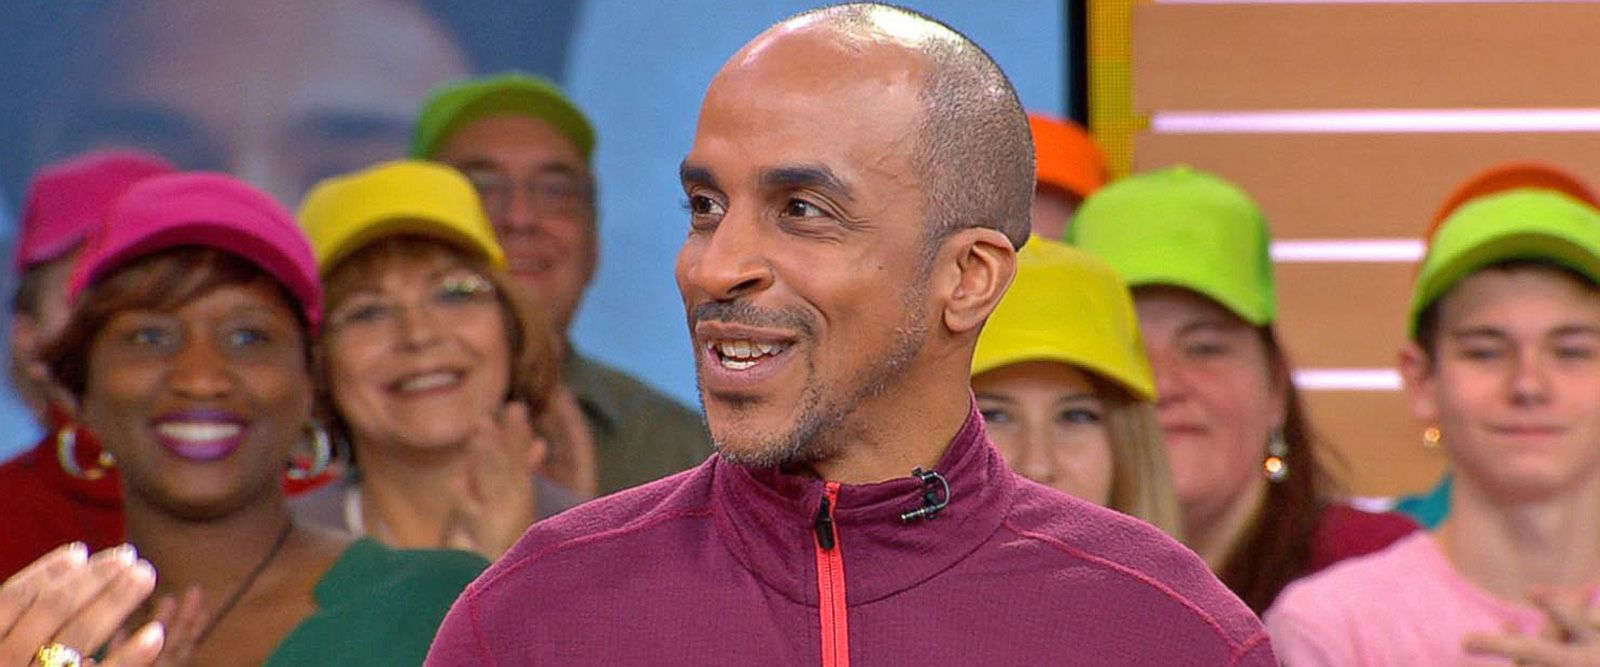 VIDEO: America's fittest truck driver shares his tips live on 'GMA'